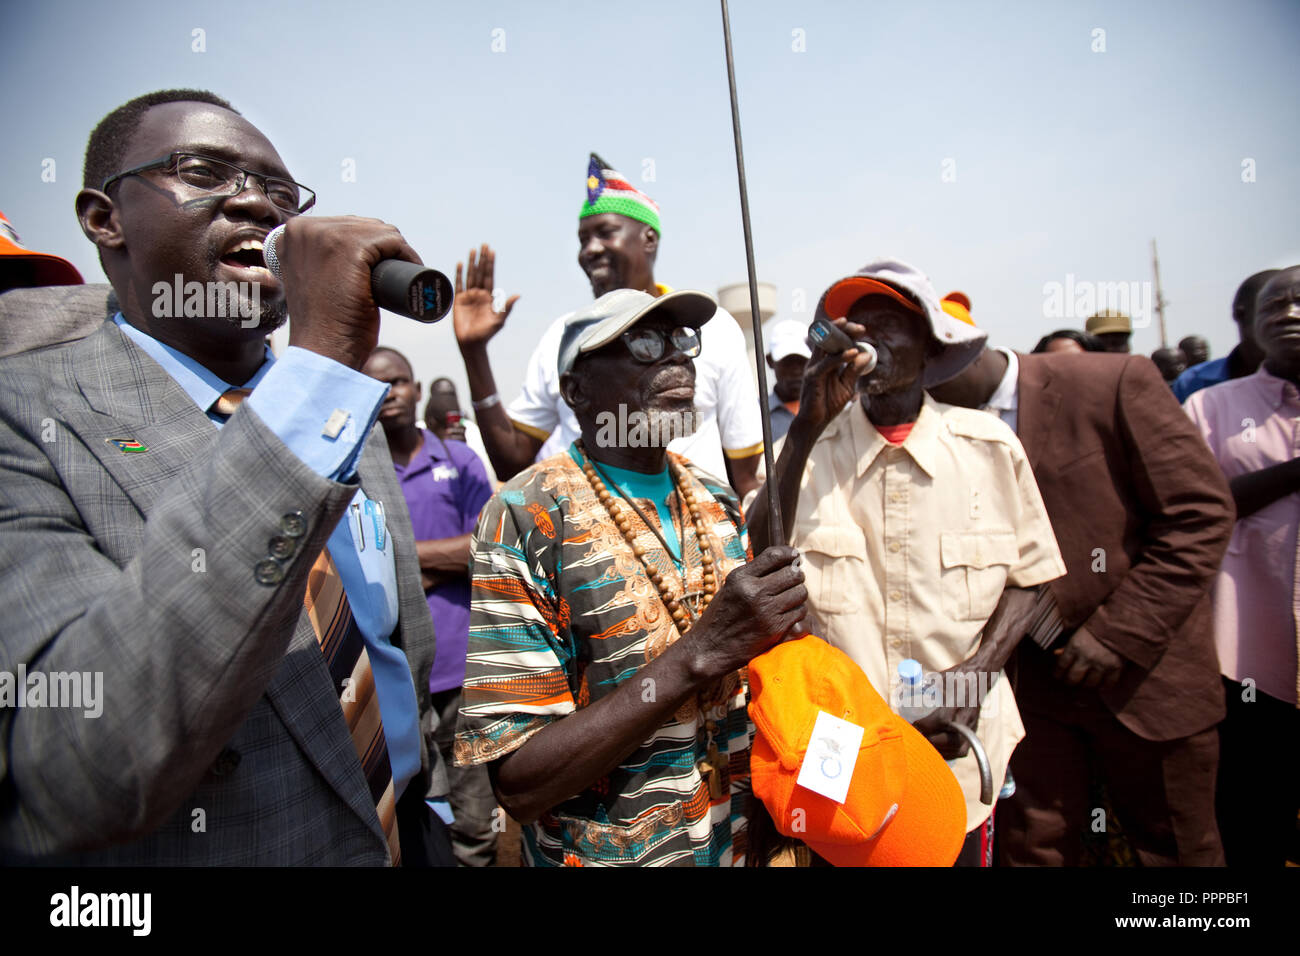 9 december 2010 - Juba, South Sudan - Southern Sudanese citizens march in the streets in support of the independence referendum in Juba, South Sudan. The march ended at the large outdoor mausoleum for Dr John Garang, where it swelled into a rally with political leaders and activists giving speeches. According to South Sudanese officials, more than 2.8 million people have registered to vote in the referendum. The referendum on whether the oil-producing region should declare independence, scheduled for Jan. 9, is the climax of a 2005 peace deal that ended decades of north-south conflict - Africa - Stock Image